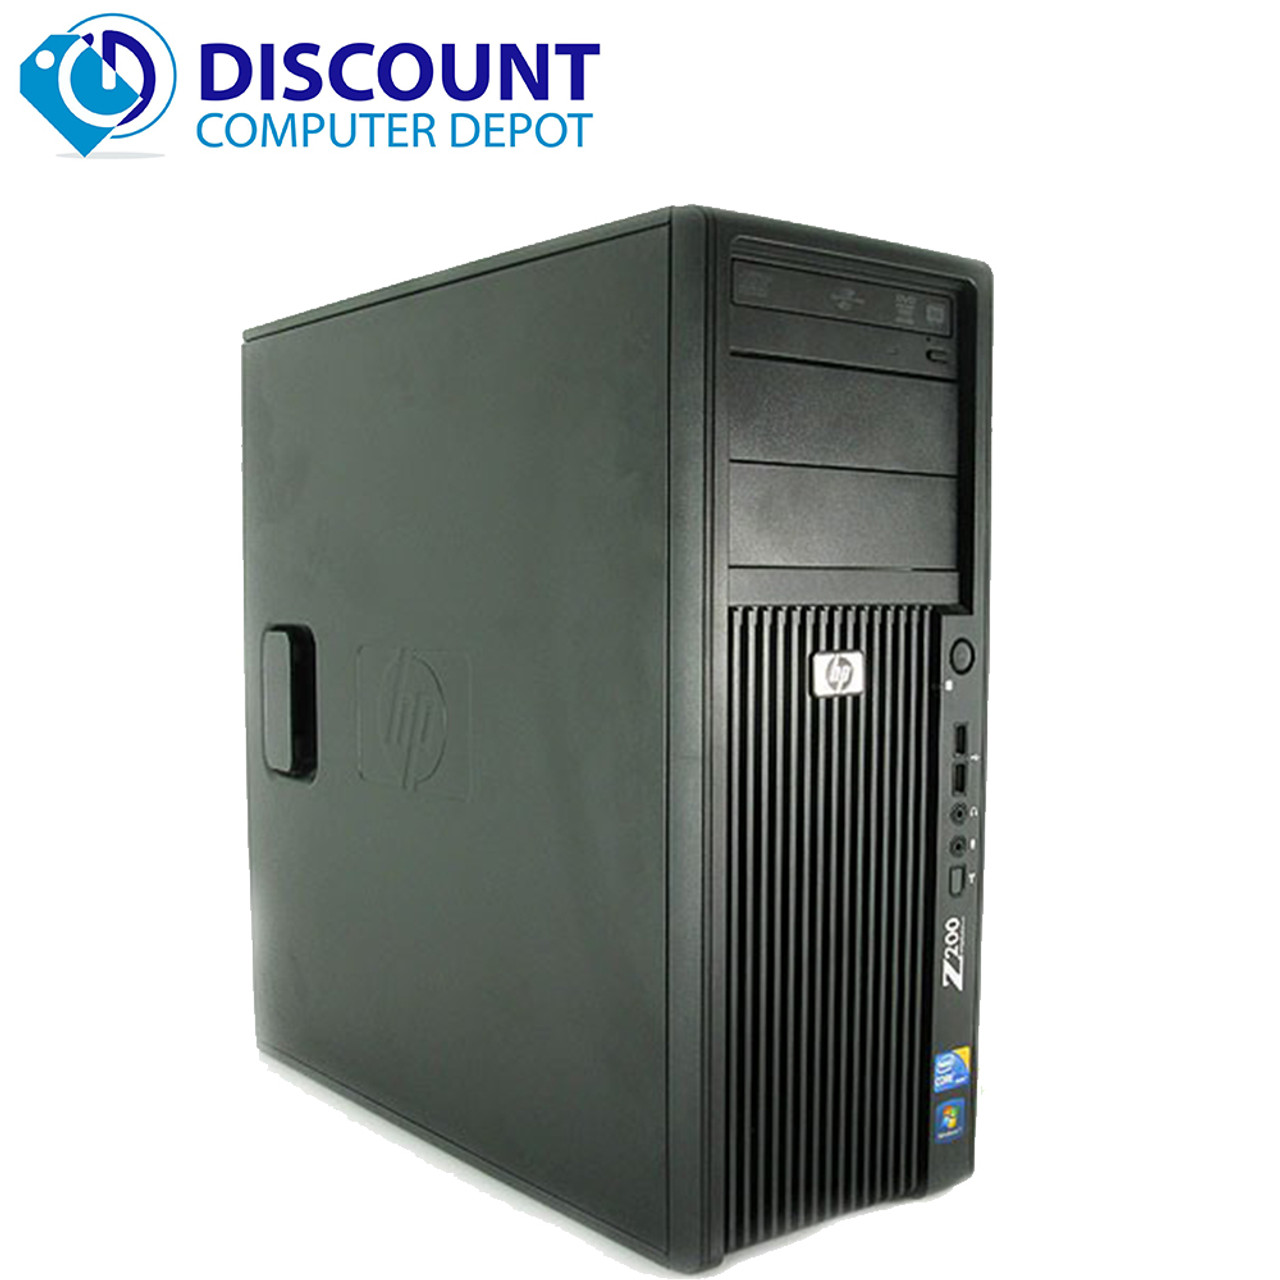 HP Z400 Windows 10 Pro Workstation Computer PC Tower Intel Xeon Processor  8GB 500GB Dual Video Graphics and WIFI